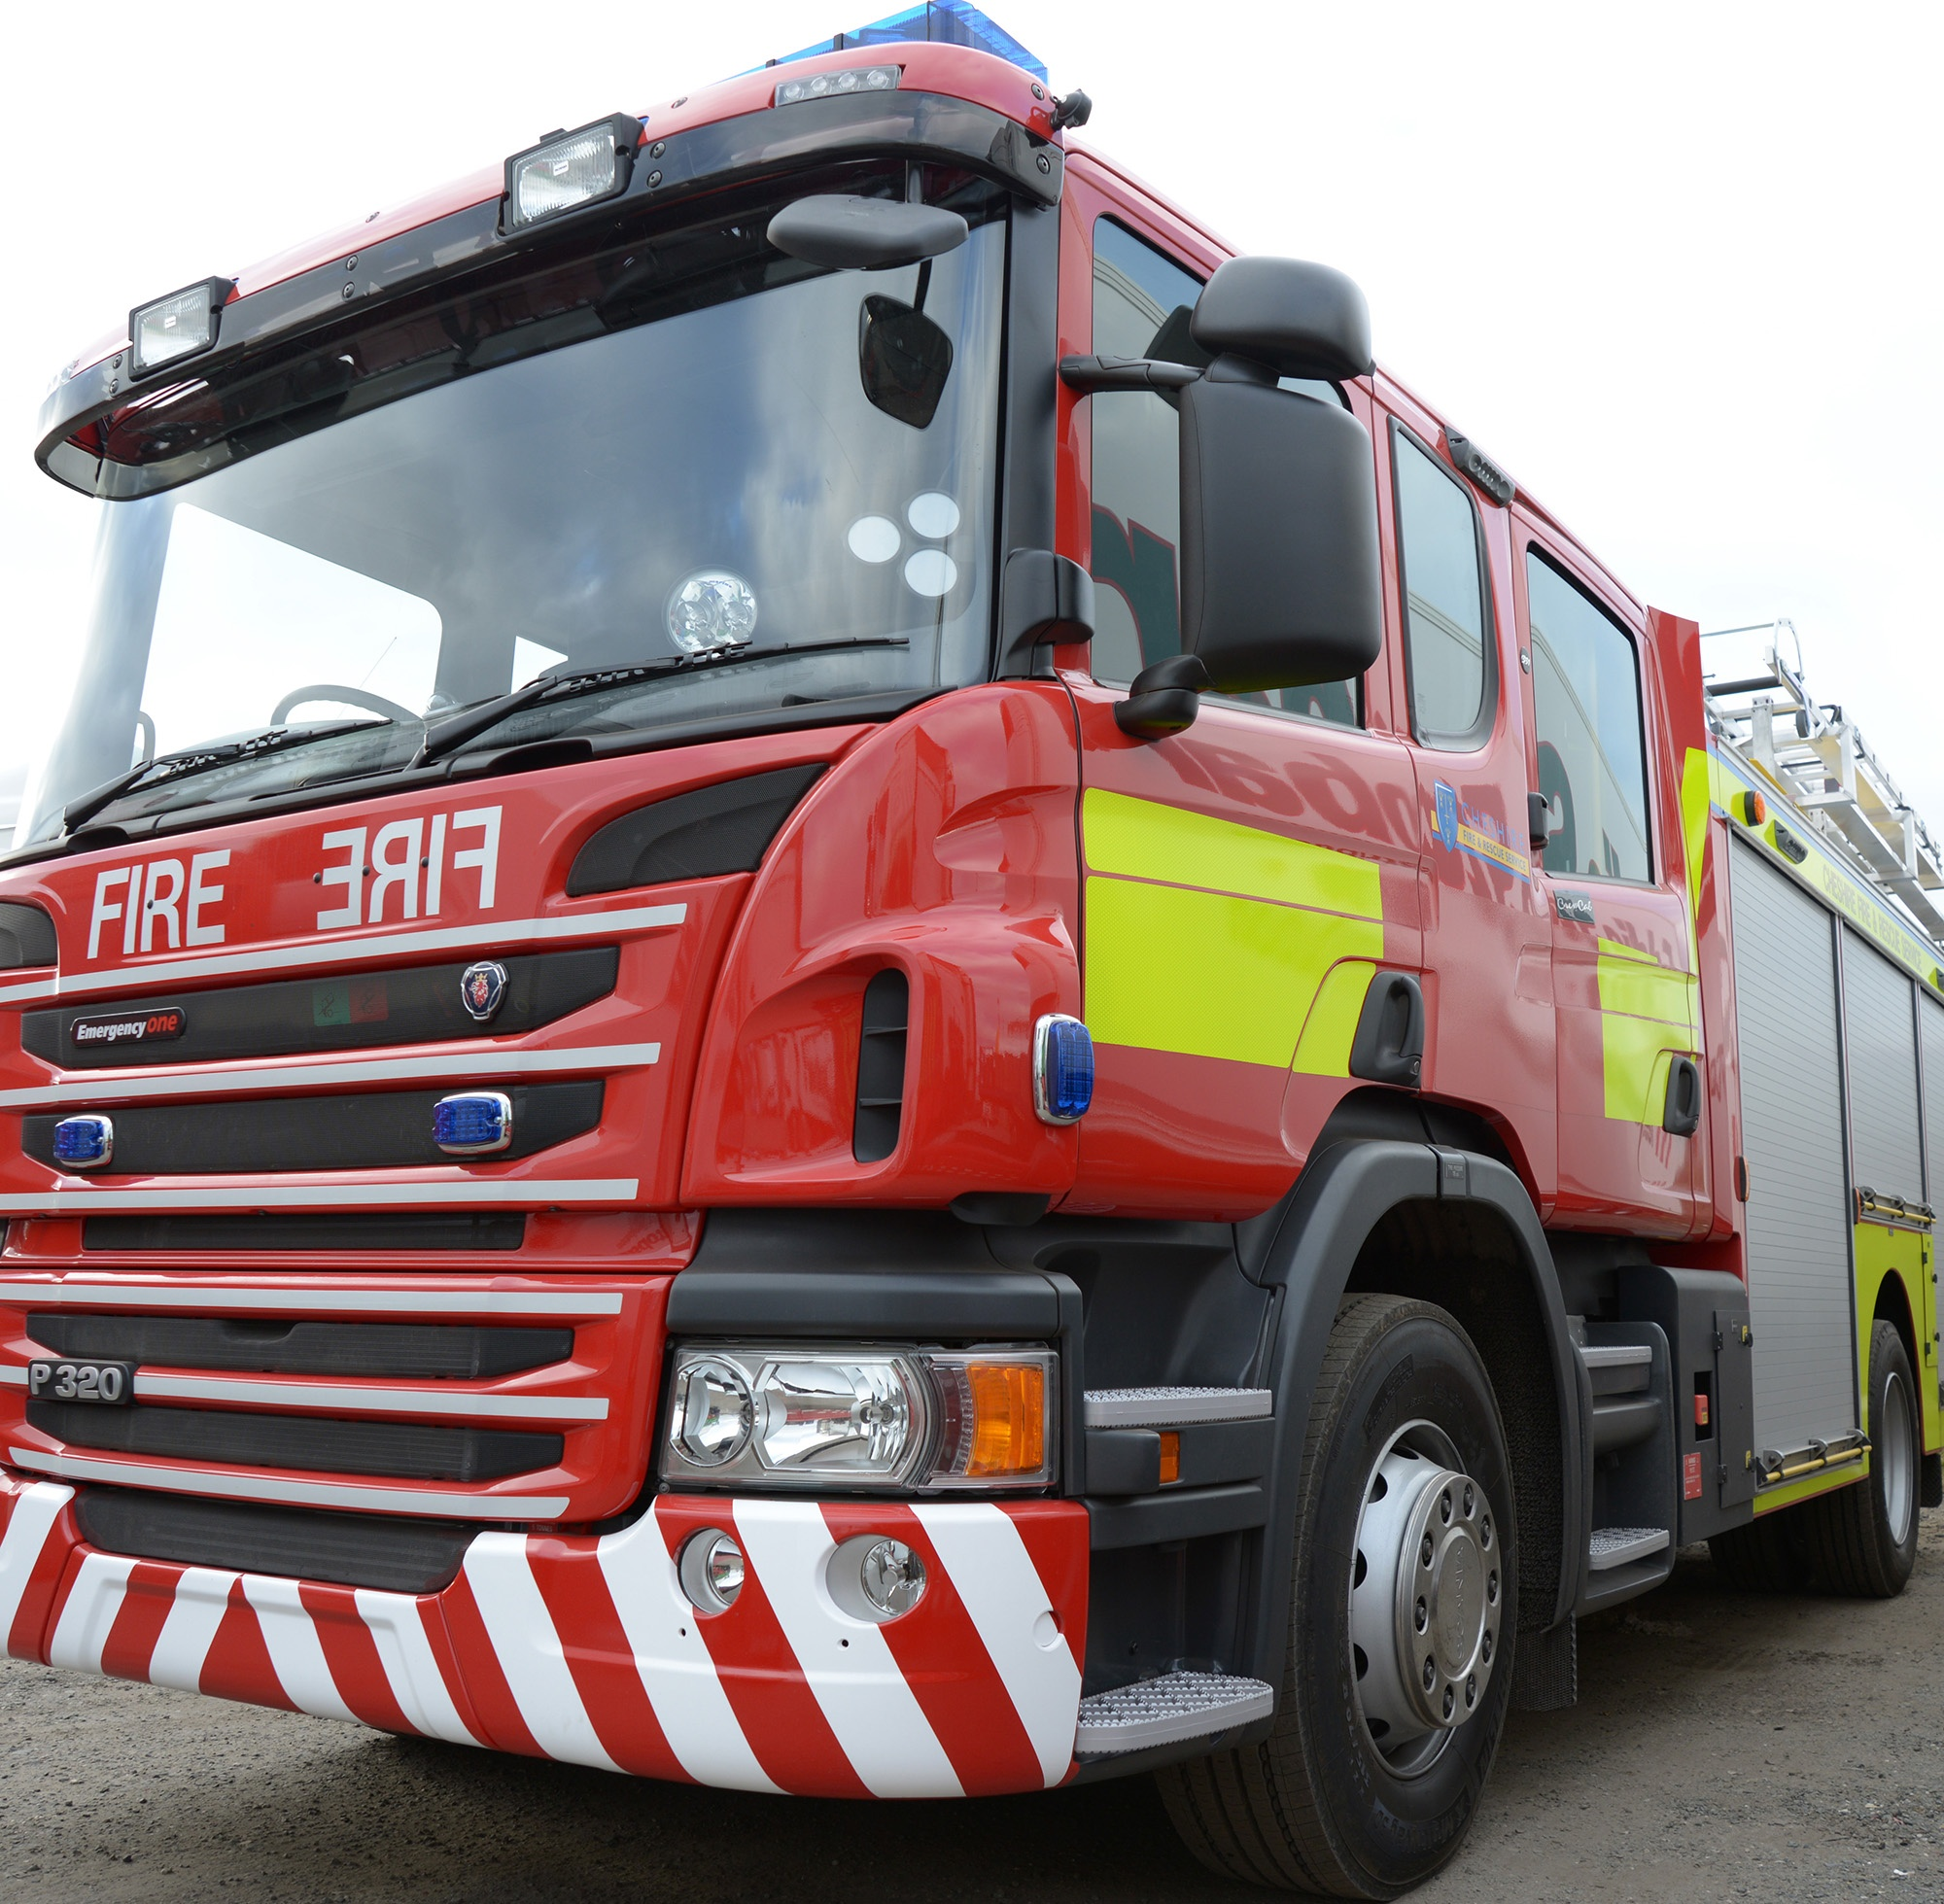 Cheshire Fire and Rescue Fire Engine (1)